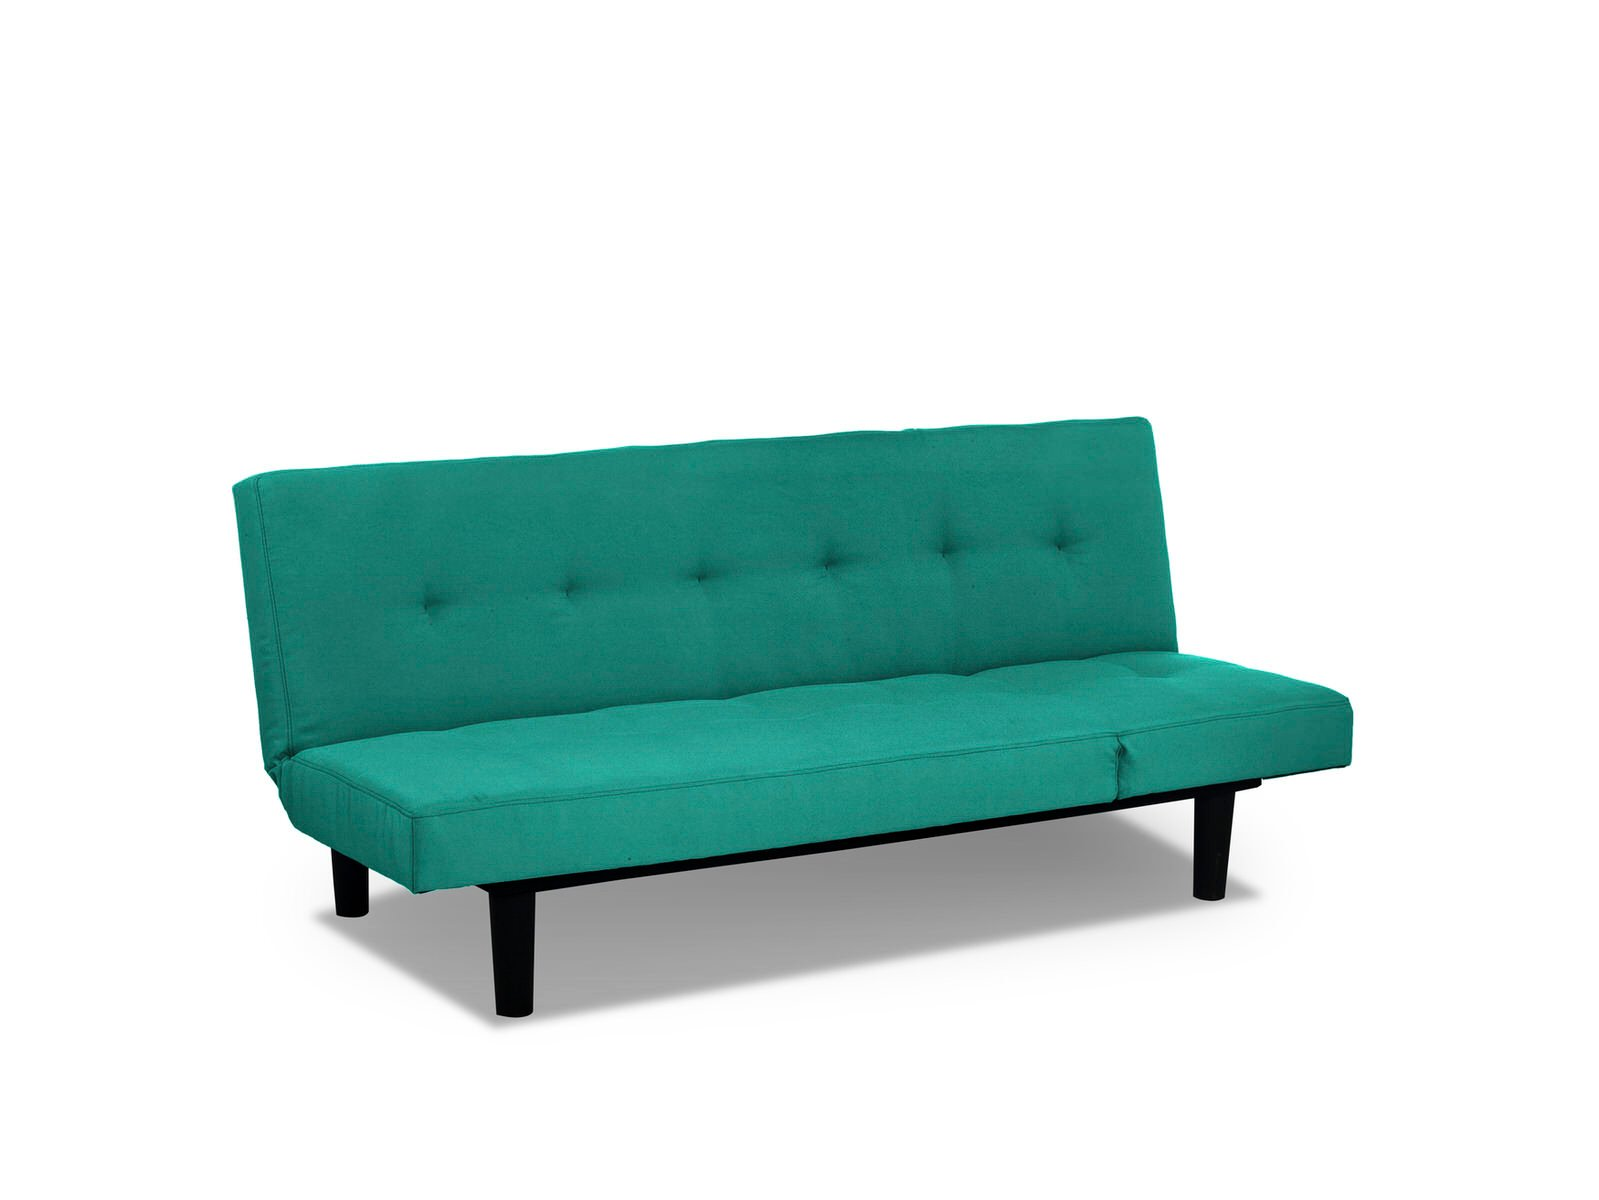 mini lounger convertible sofa bed teal by serta lifestyle. Black Bedroom Furniture Sets. Home Design Ideas